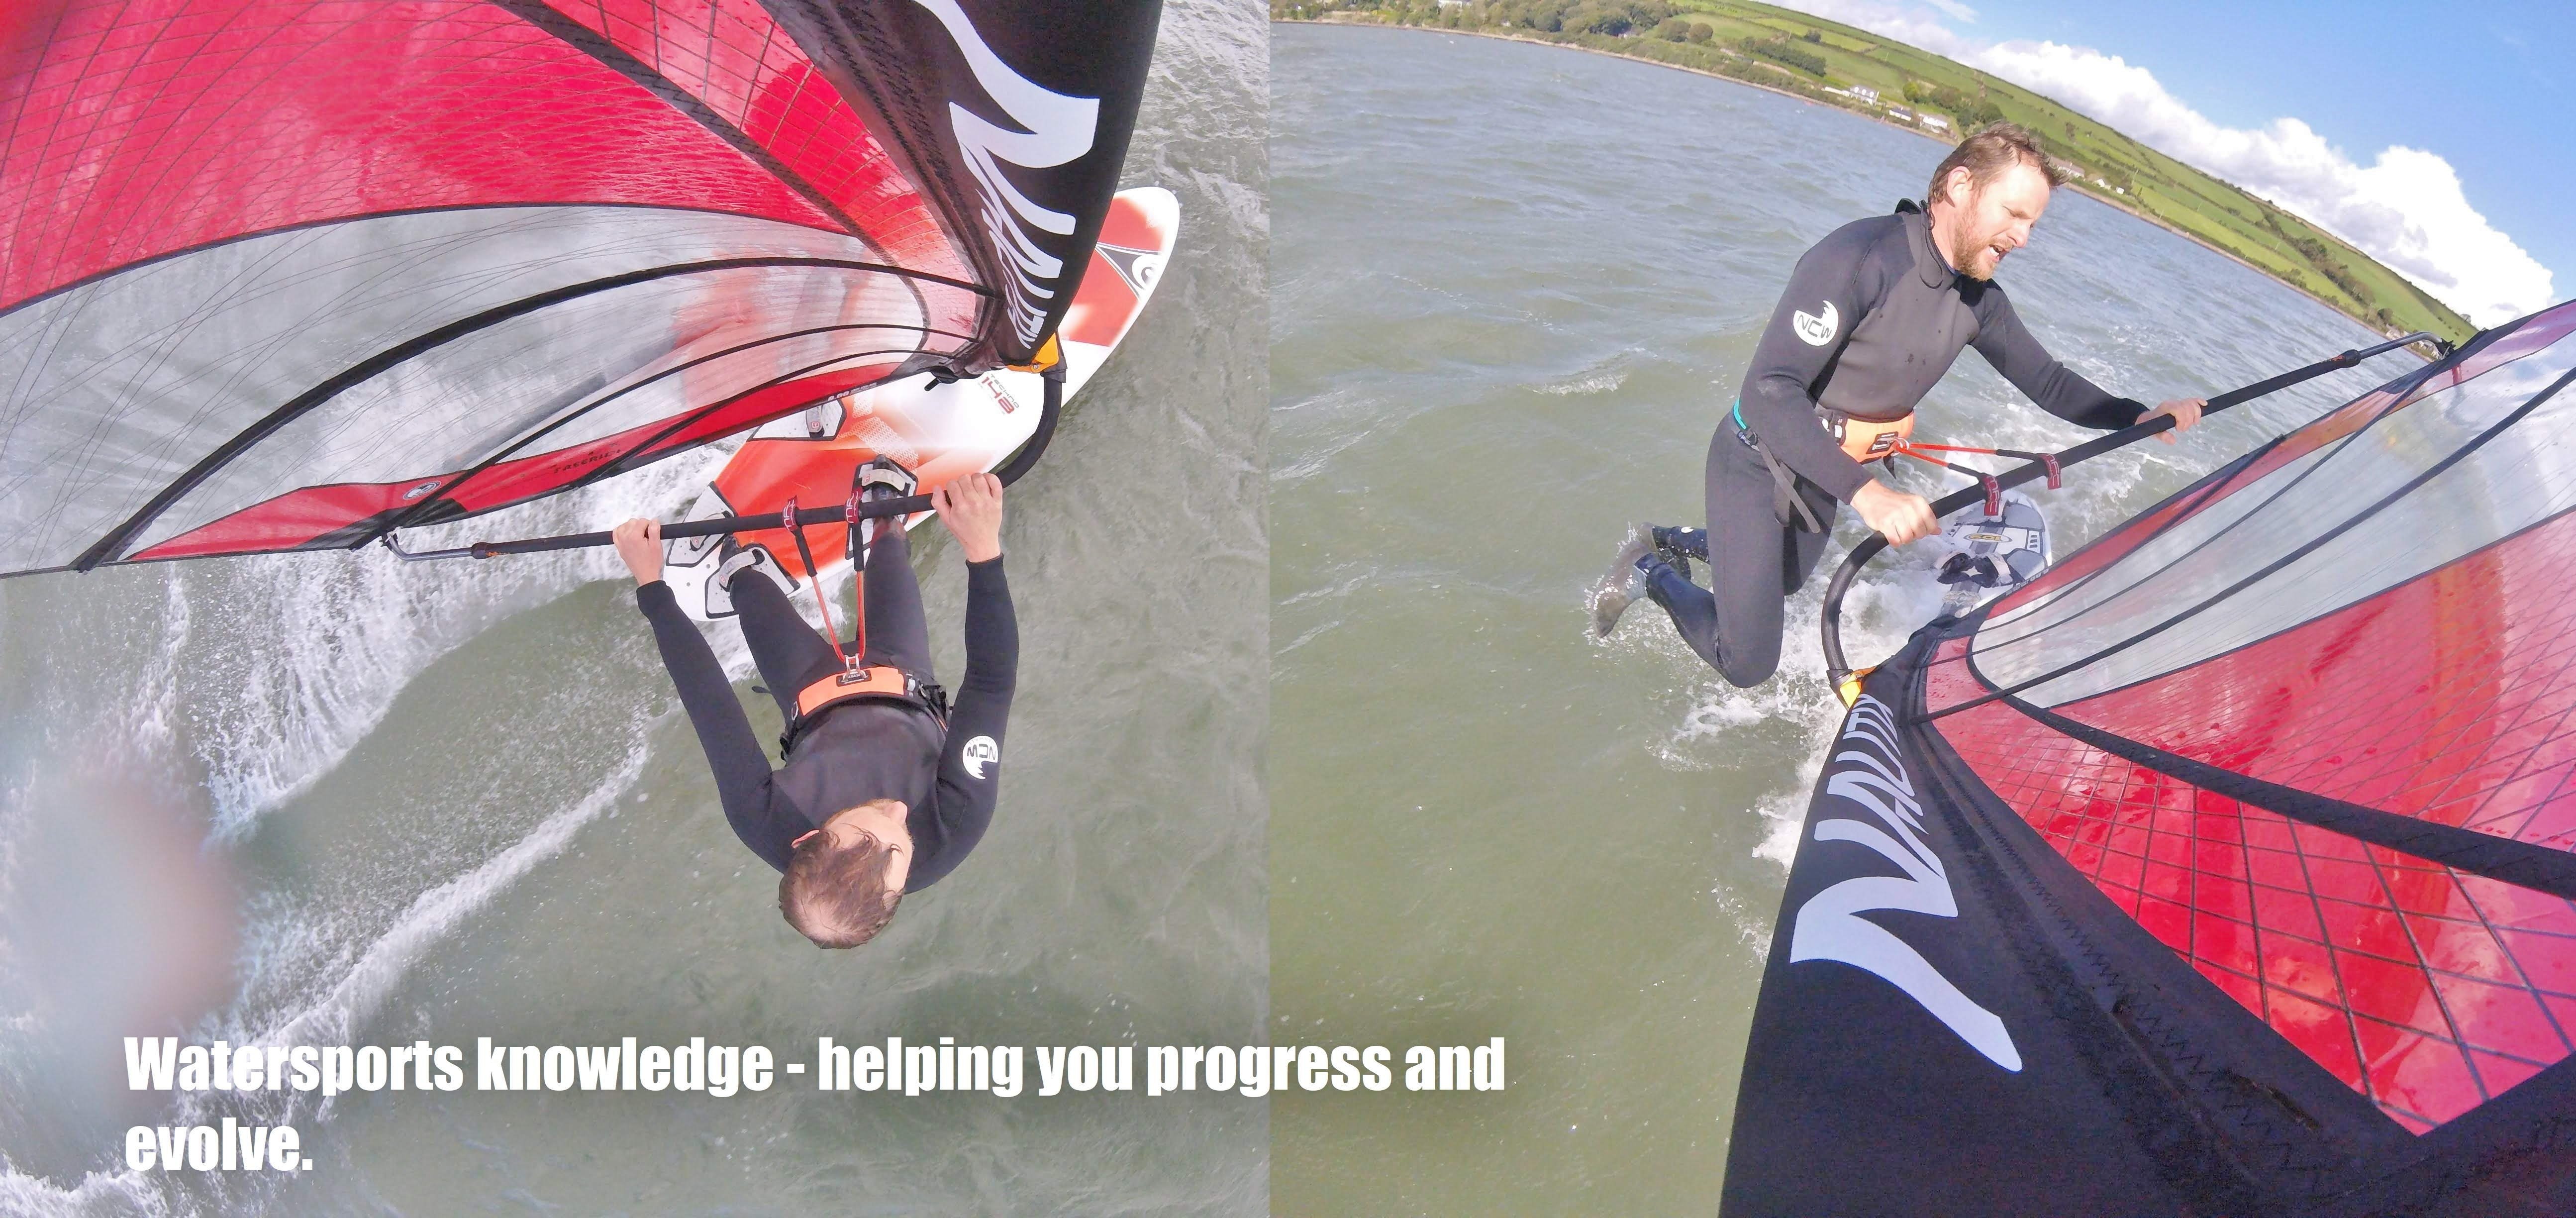 Watersports knowledge - helping you progress and evolve.